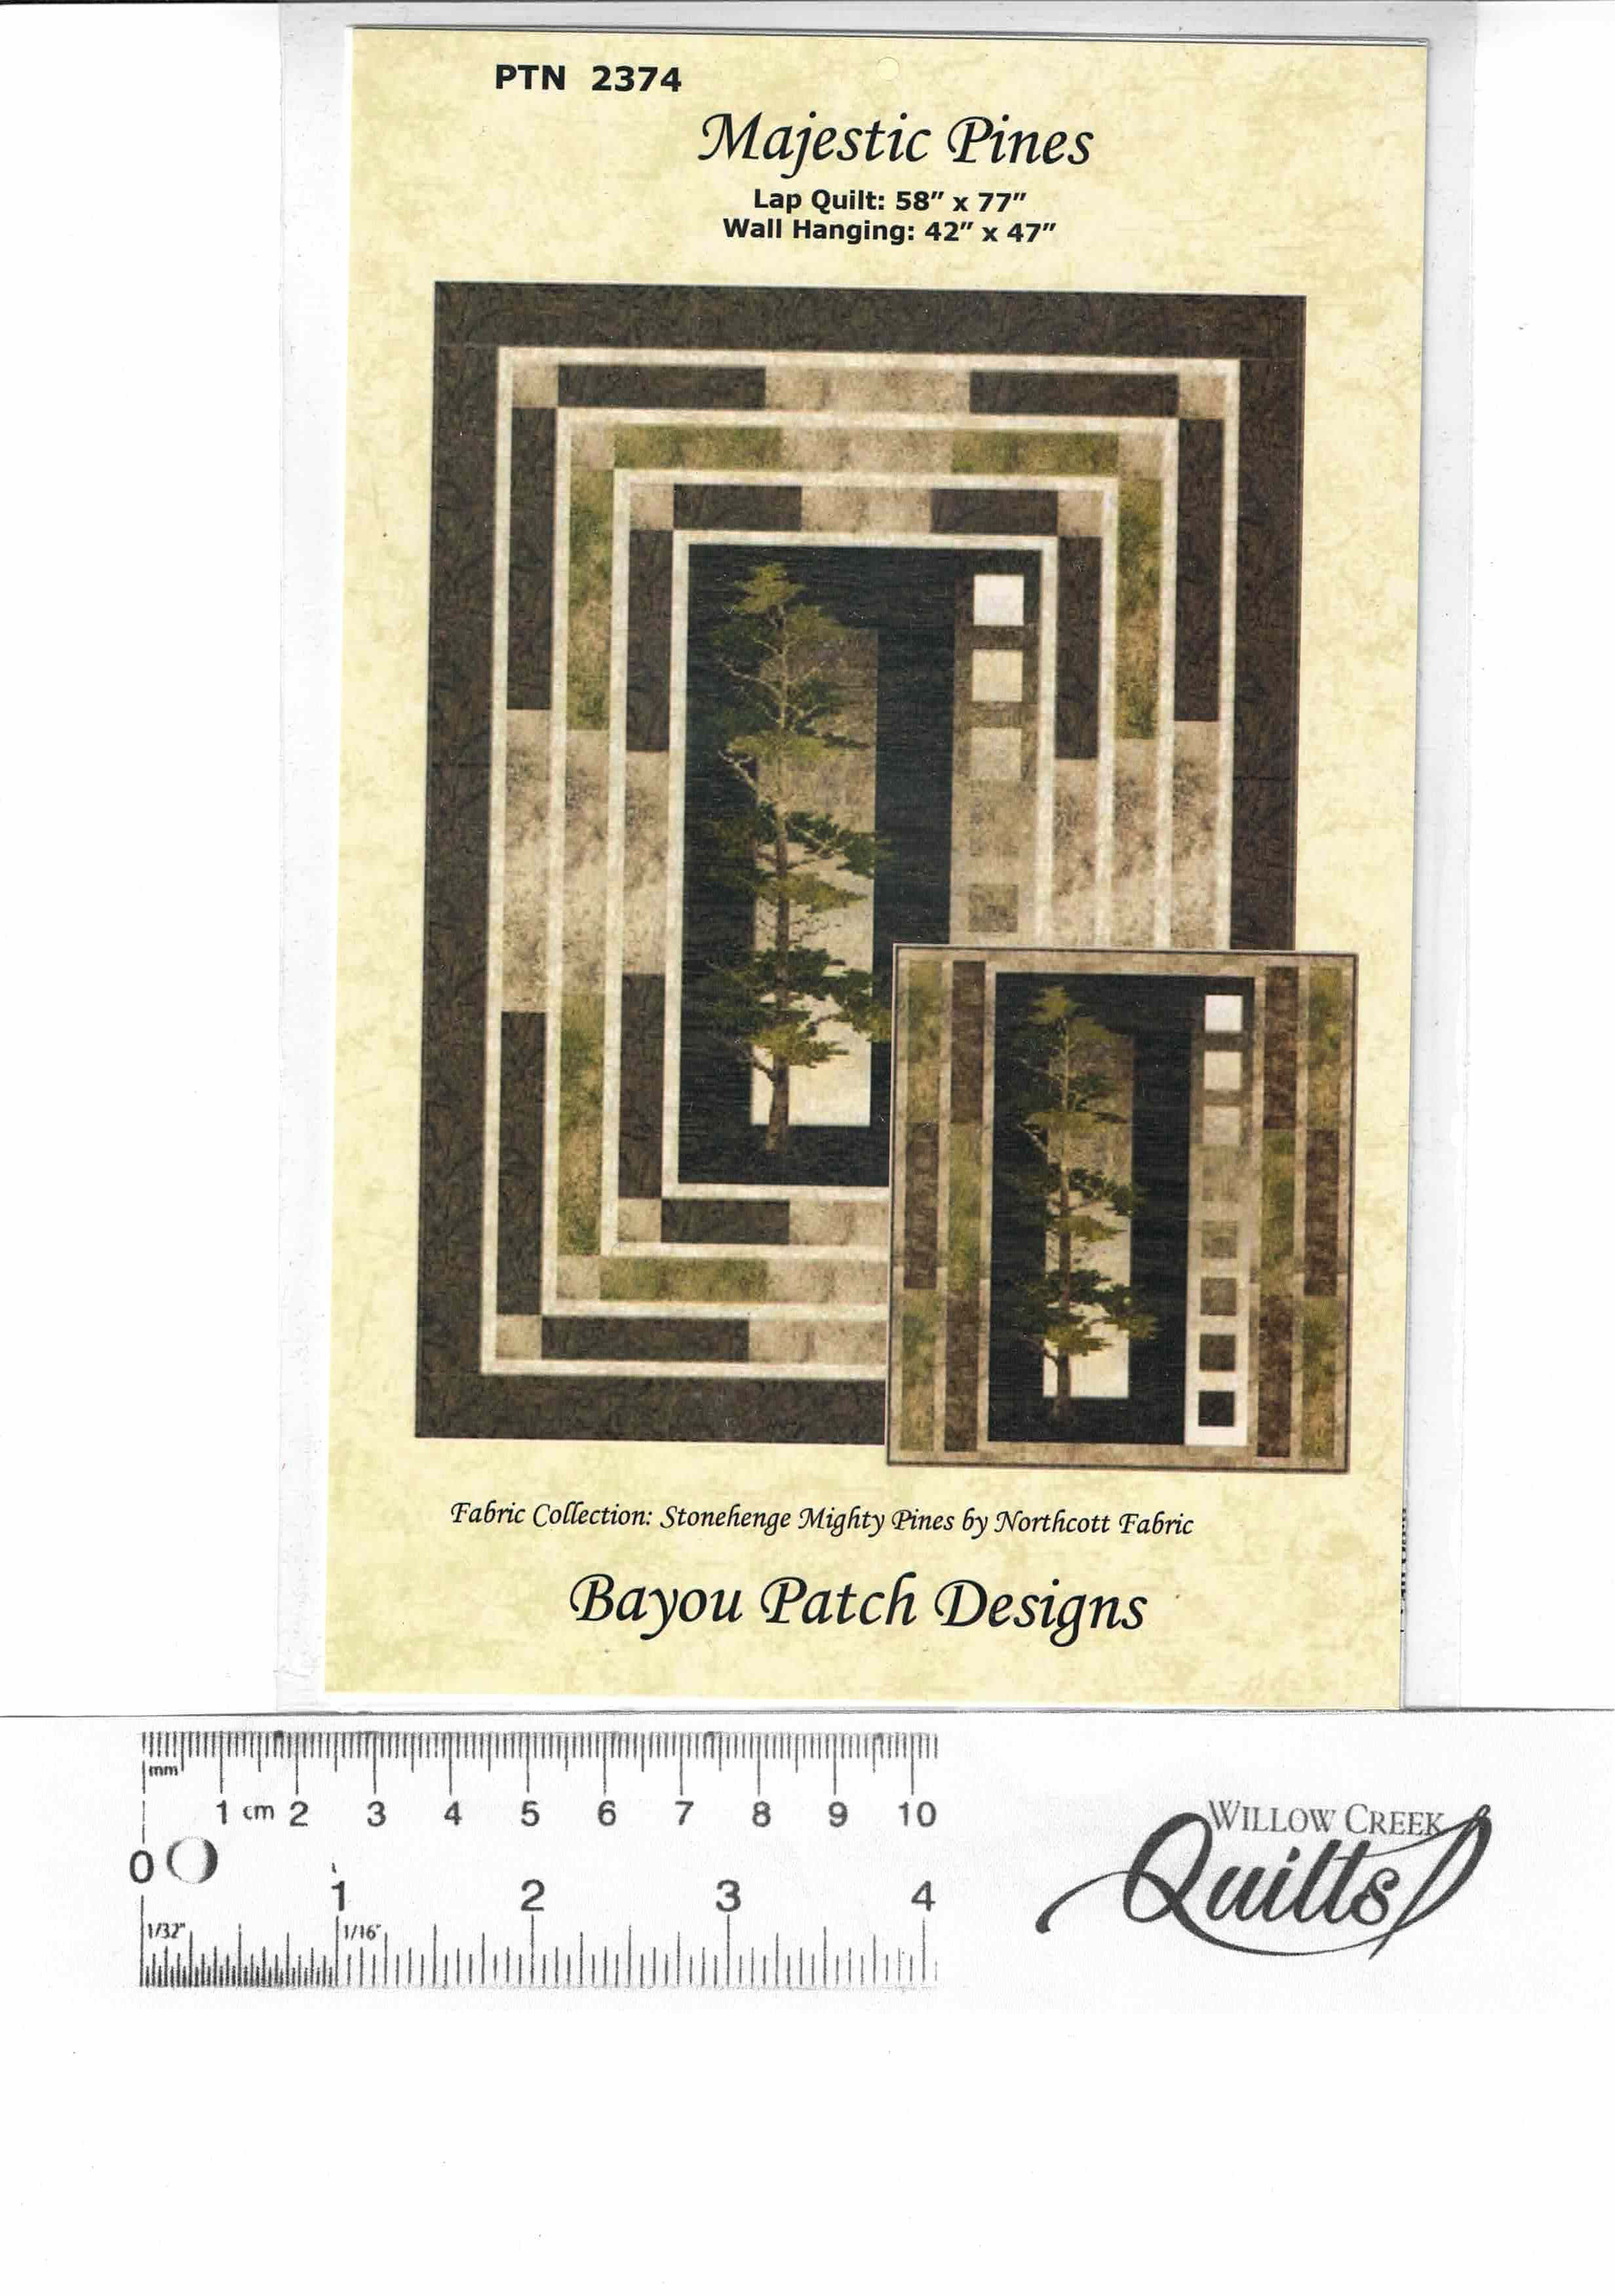 Majestic Pines pattern - PTN 2374